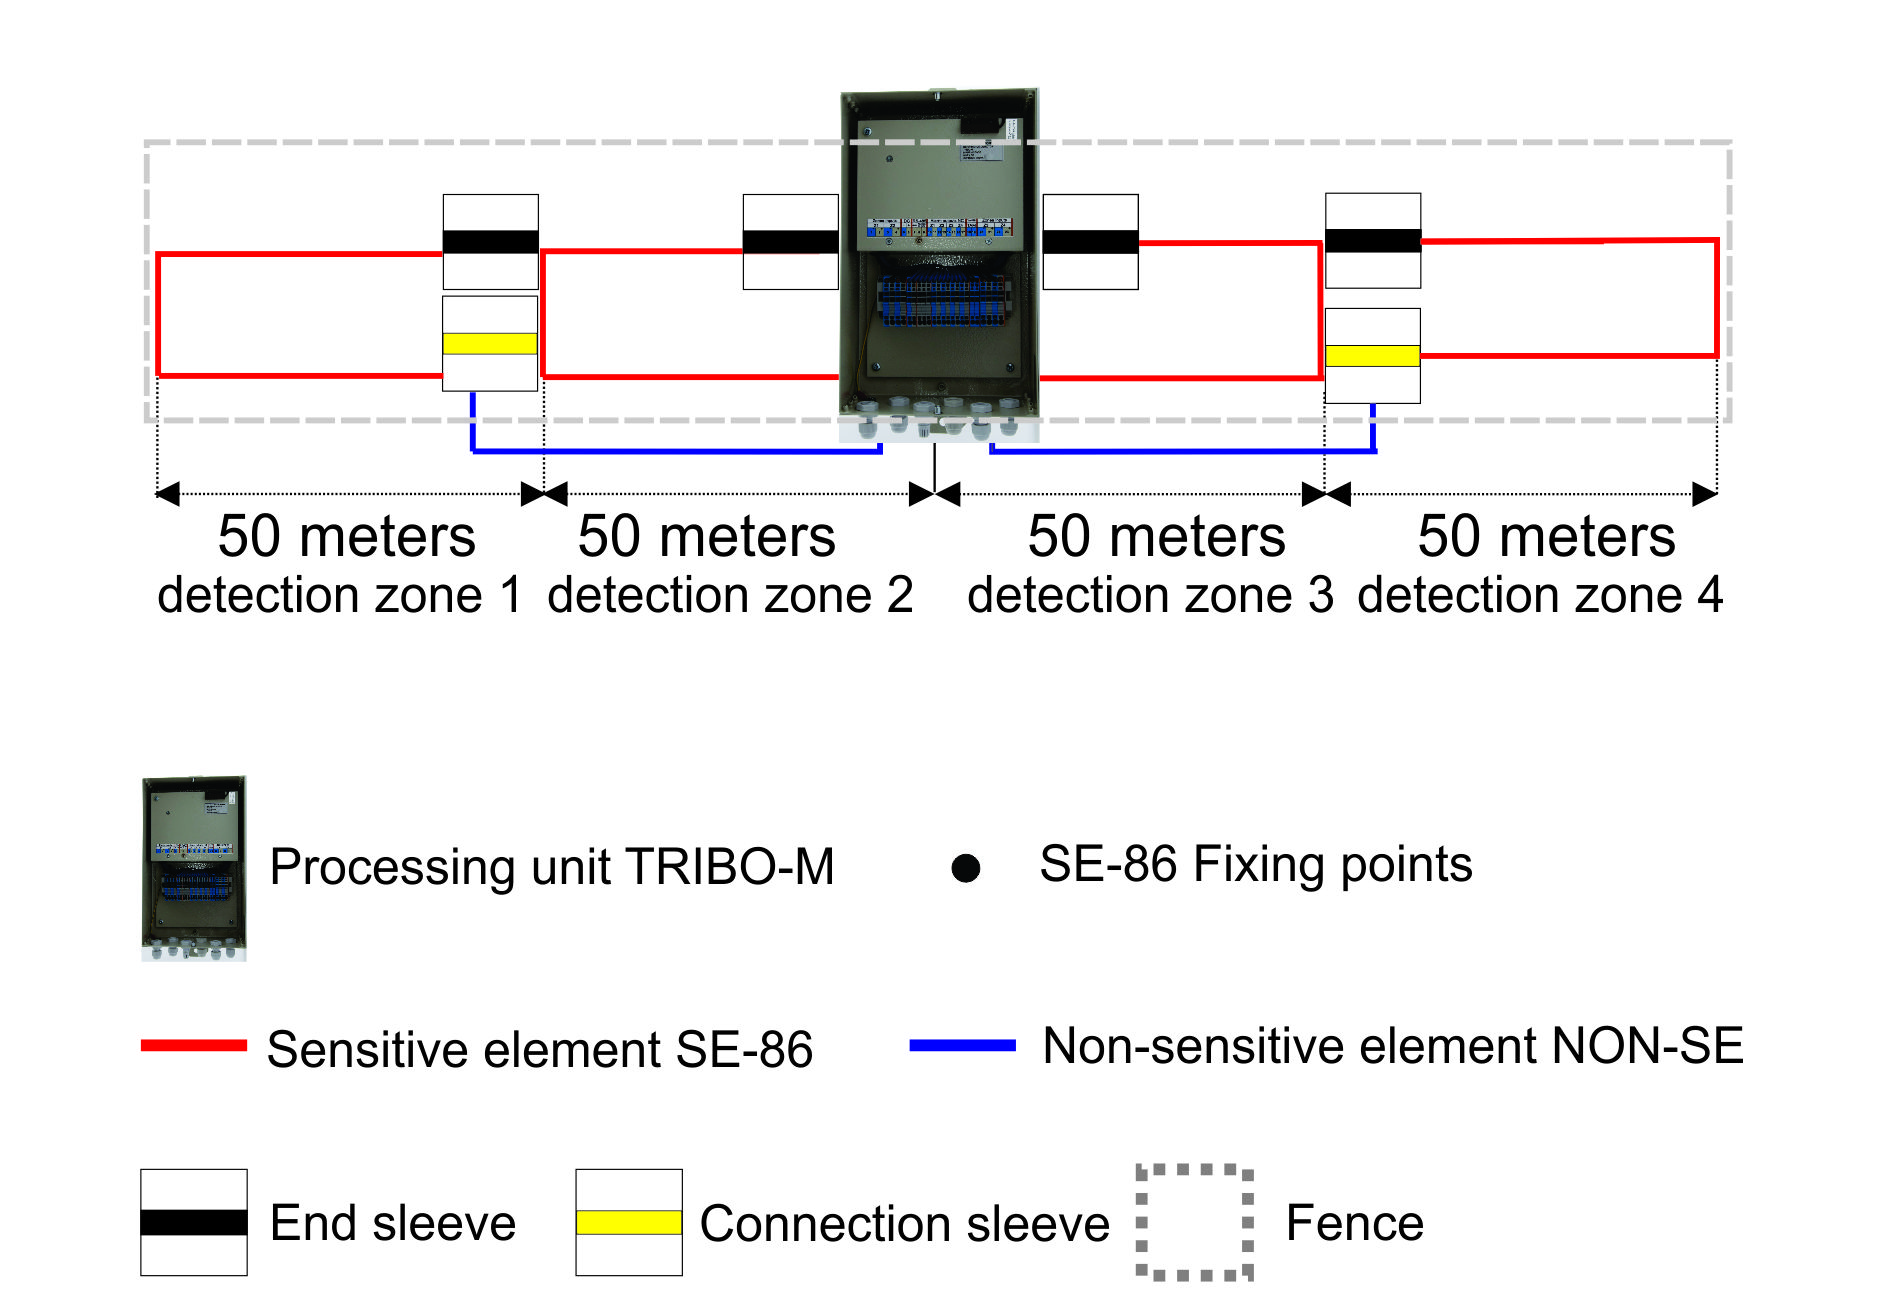 TRIBO-M system one detection zone up to 50 meters